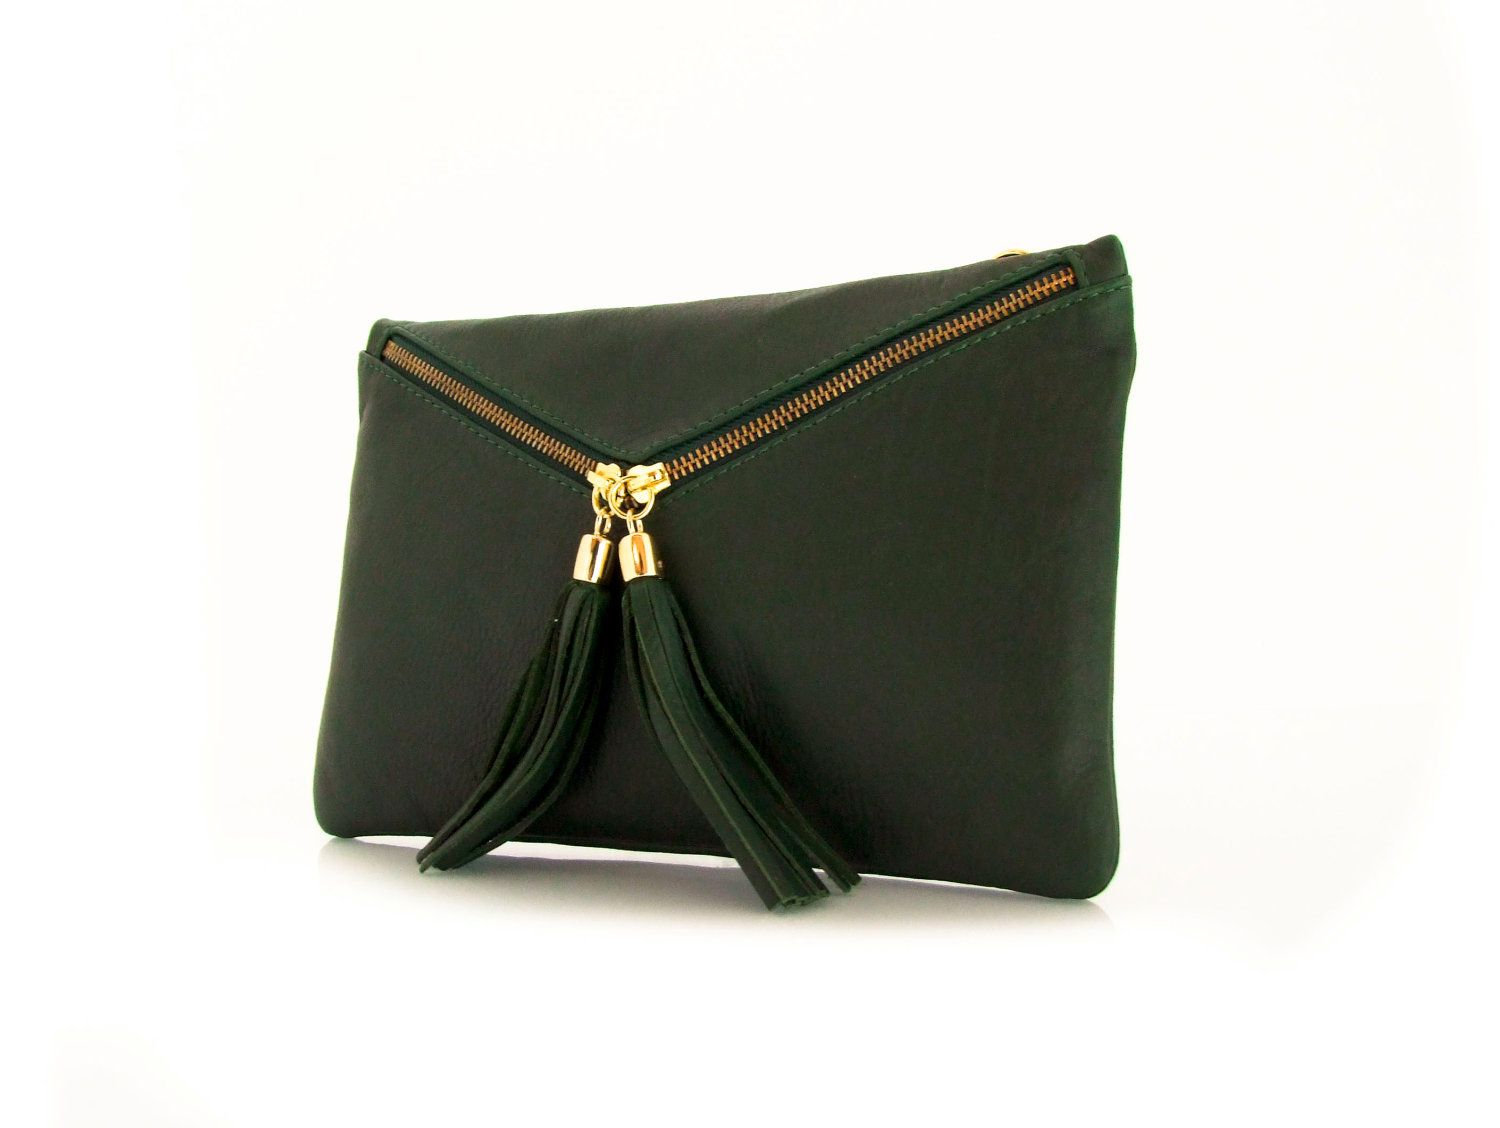 6f2a7c45b86 Handmade Leather Clutch Bag in dark Green -.- the Envelope -.- 20%  Christmas sale. $75.00, via Etsy.